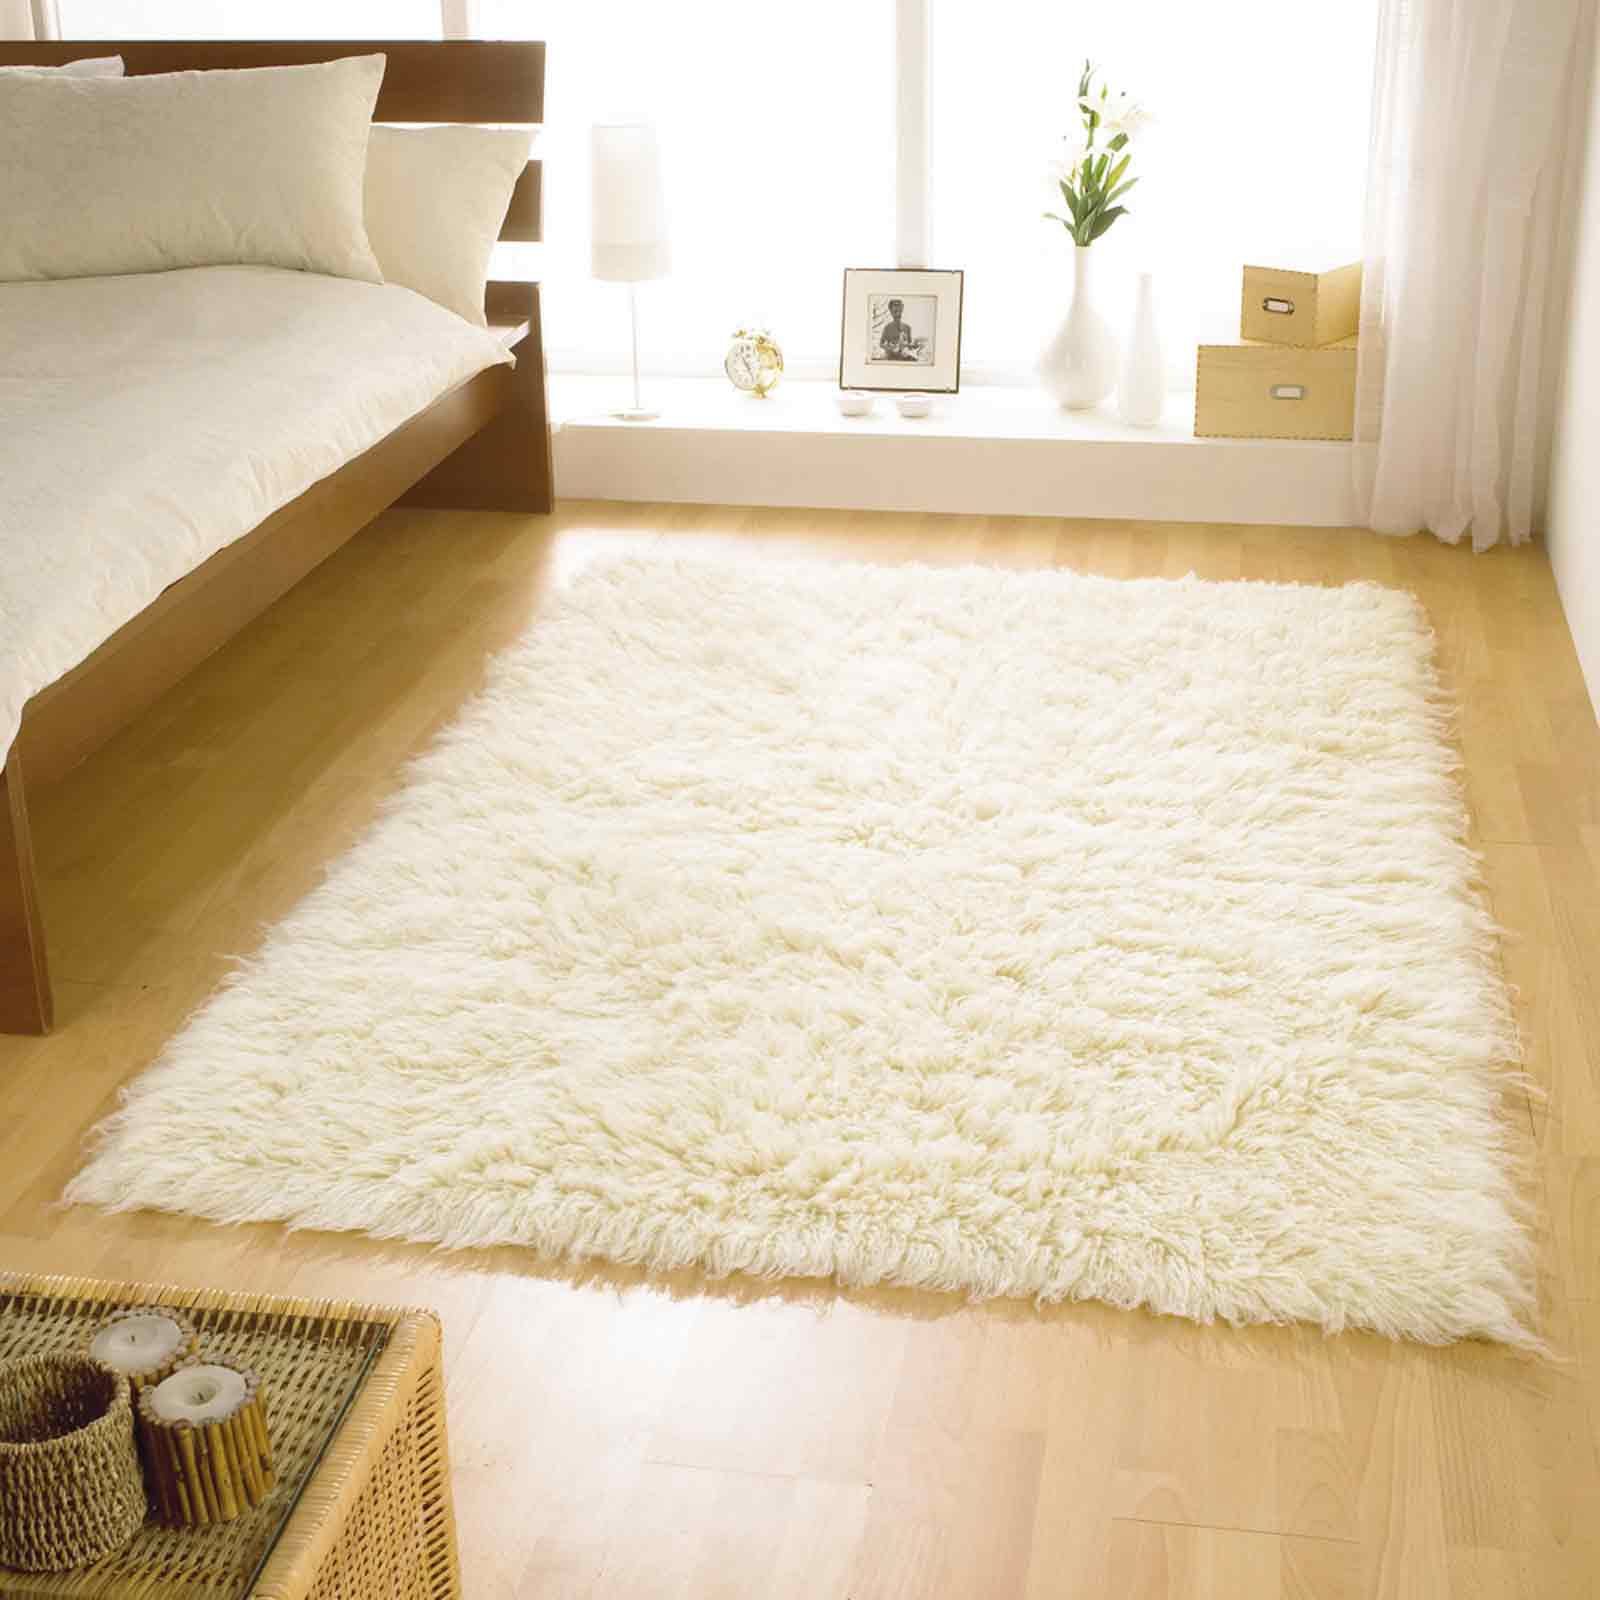 Flokati Rugs in Ivory